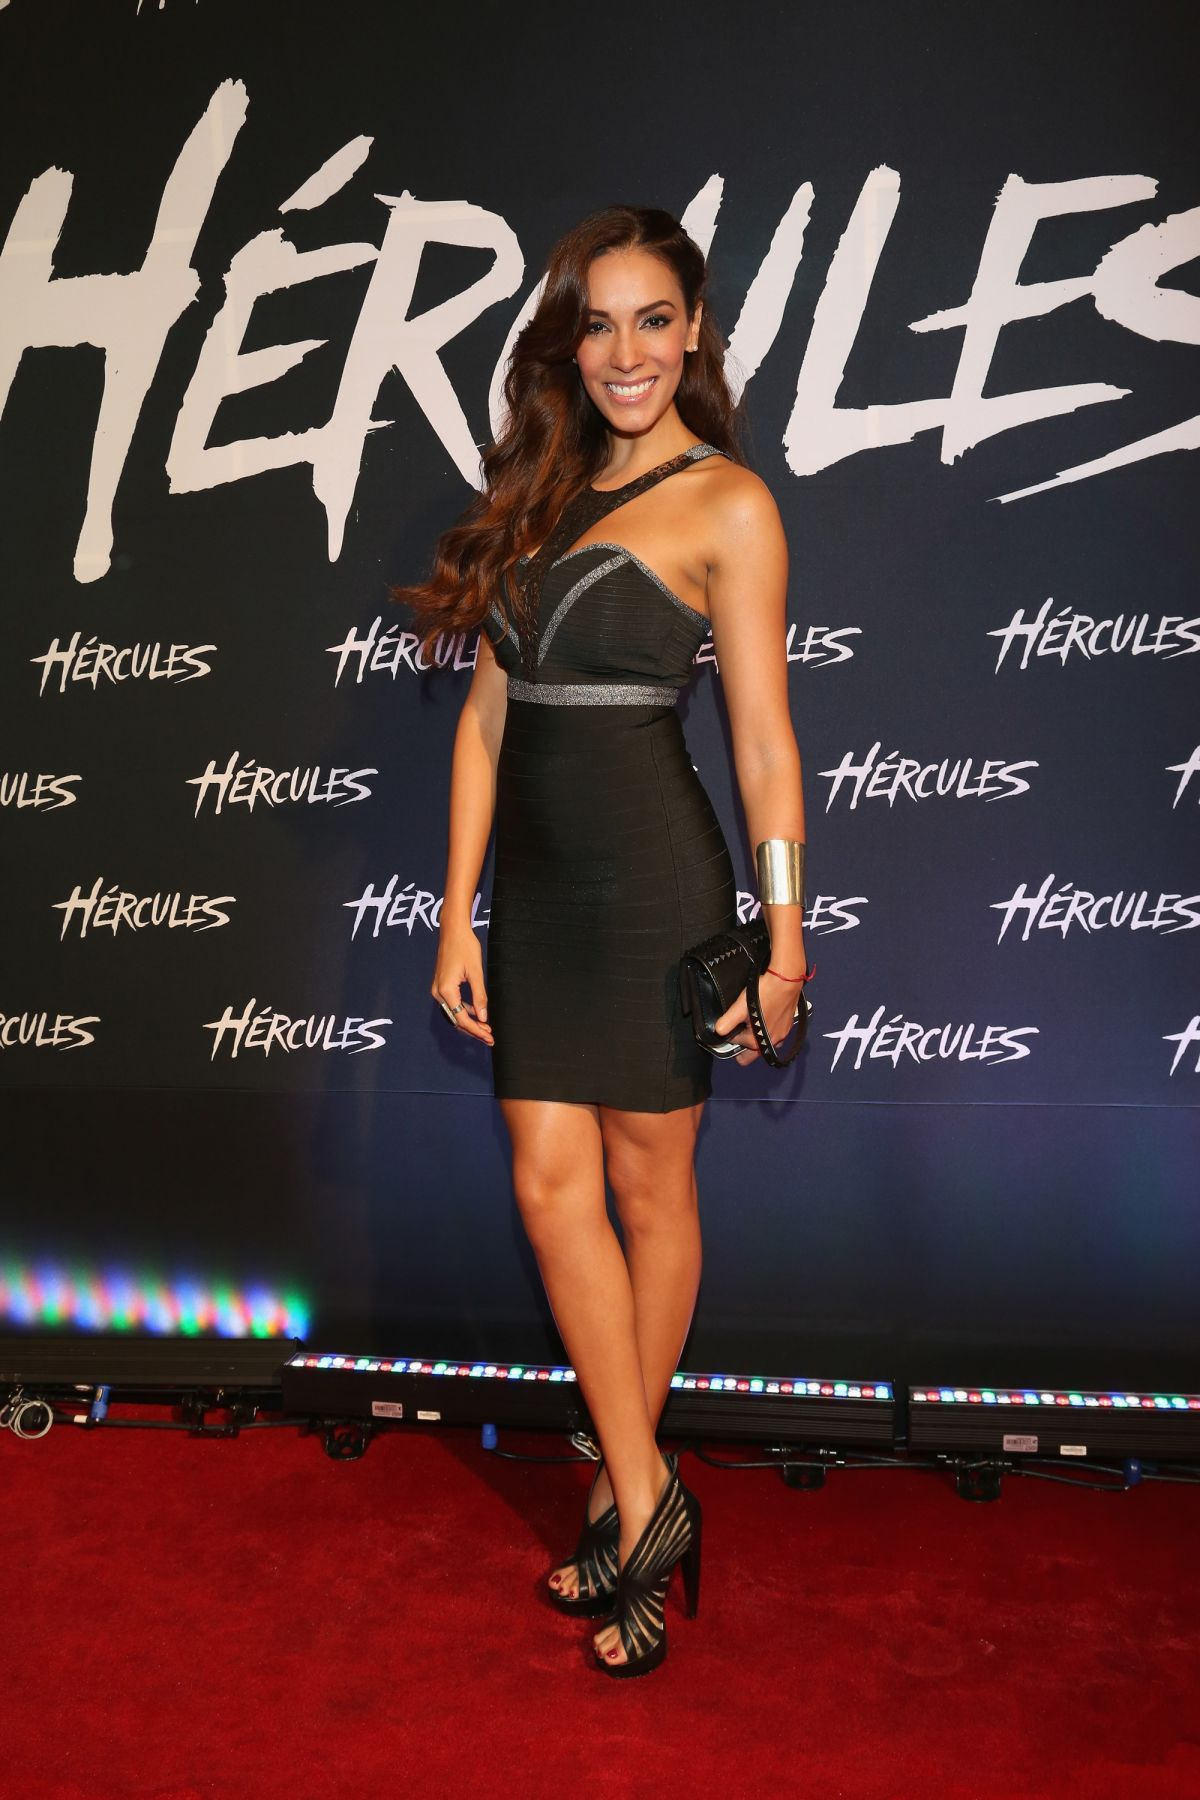 CAROLINA MORAN at Hercules Premiere in Mexico City